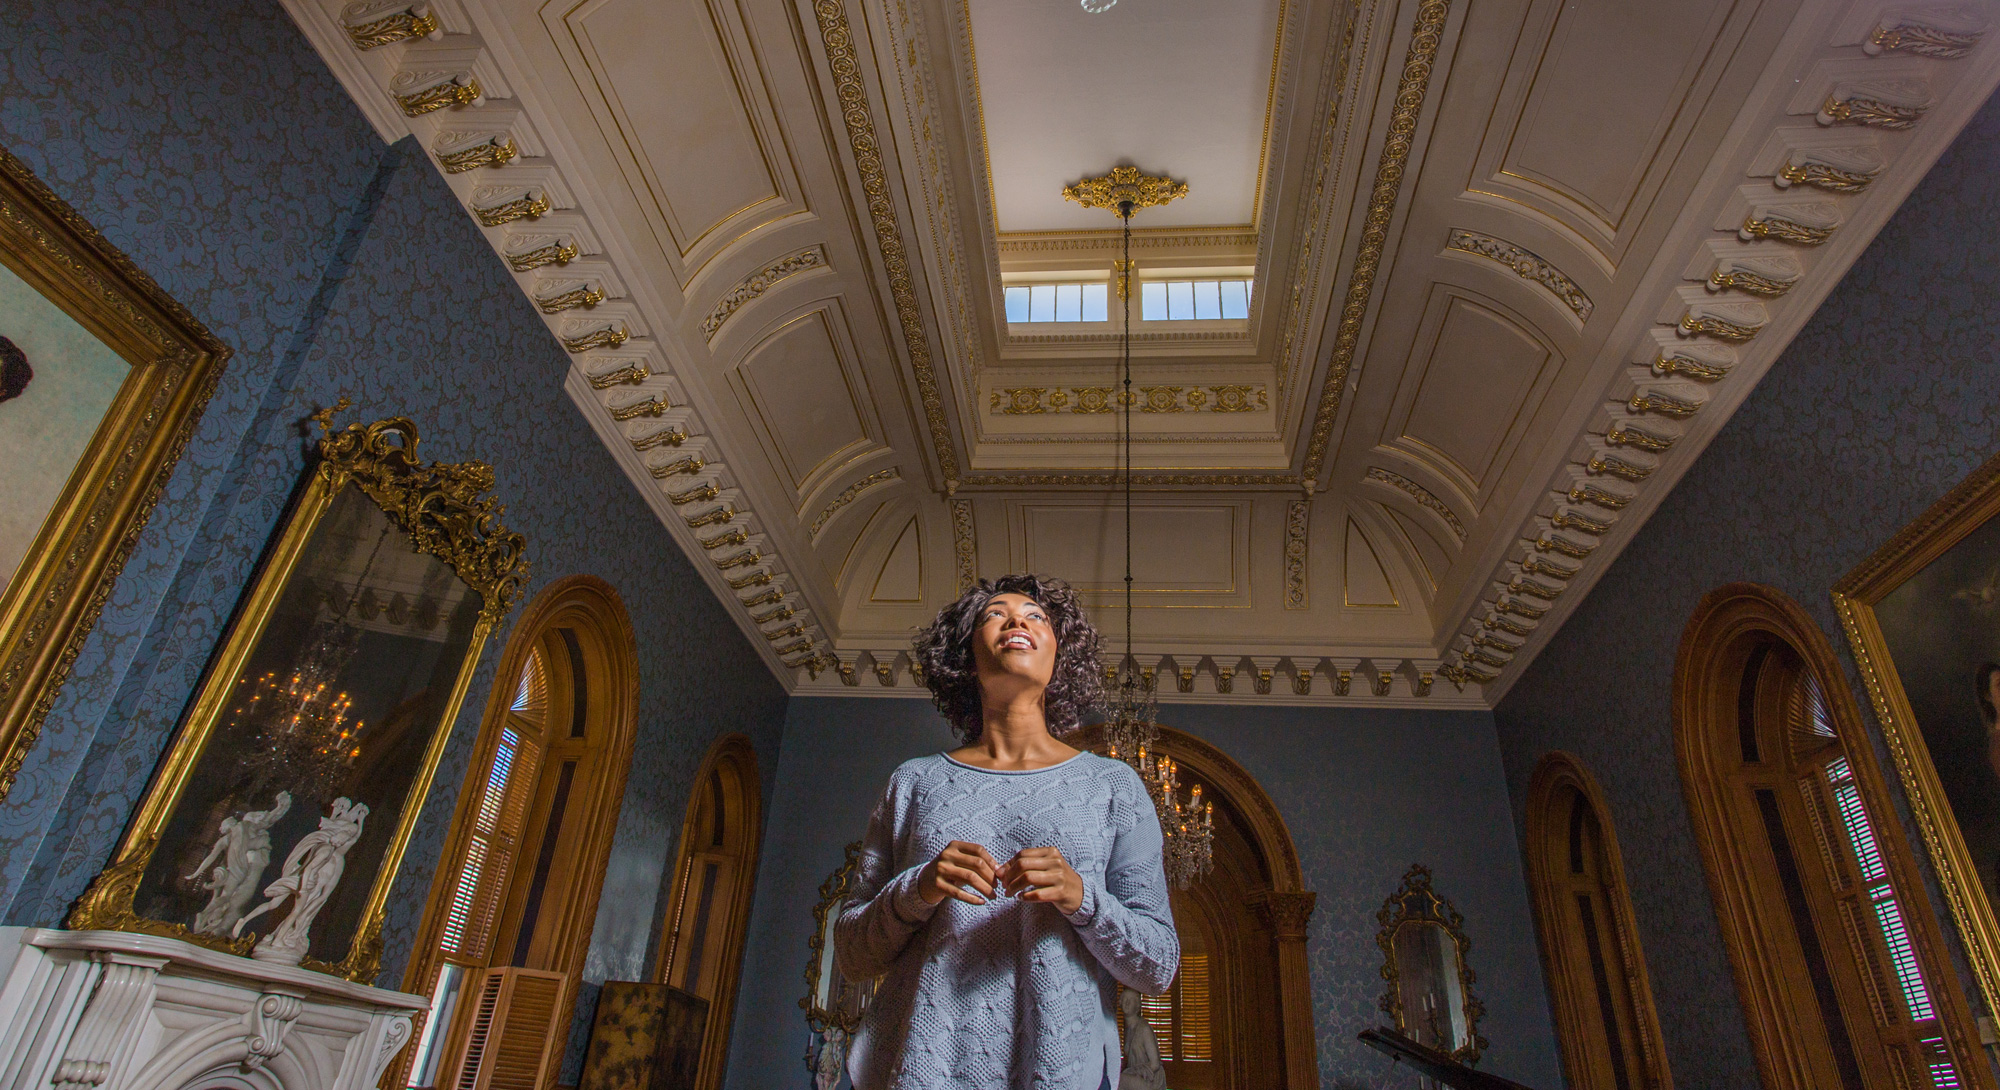 A woman gazes toward the ornate ceiling at the Hay House in Macon, Georgia